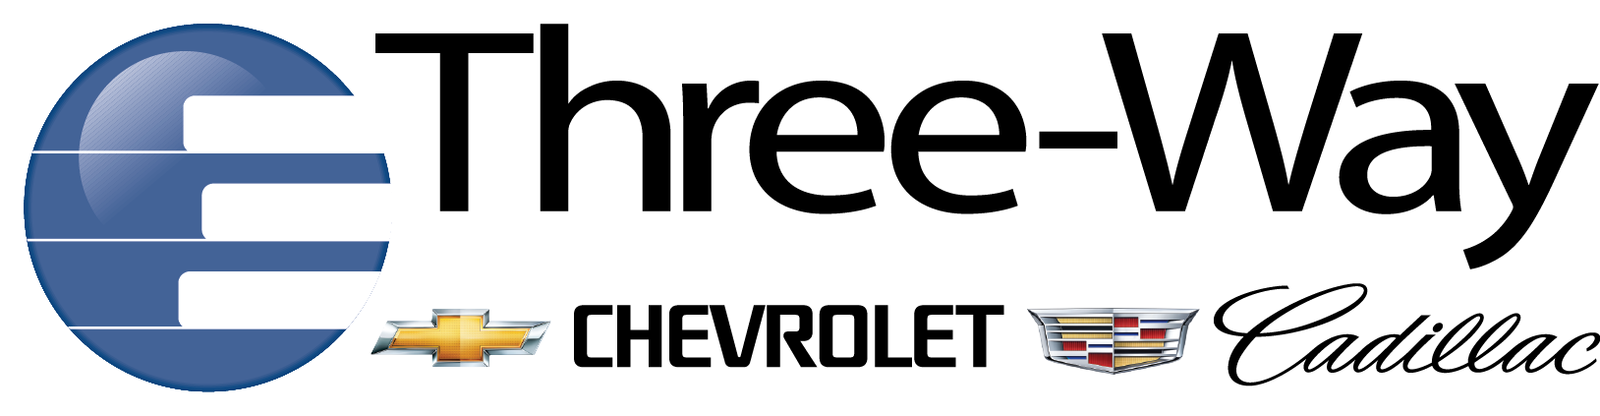 Charming Three Way Chevrolet Co   Bakersfield, CA: Read Consumer Reviews, Browse  Used And New Cars For Sale